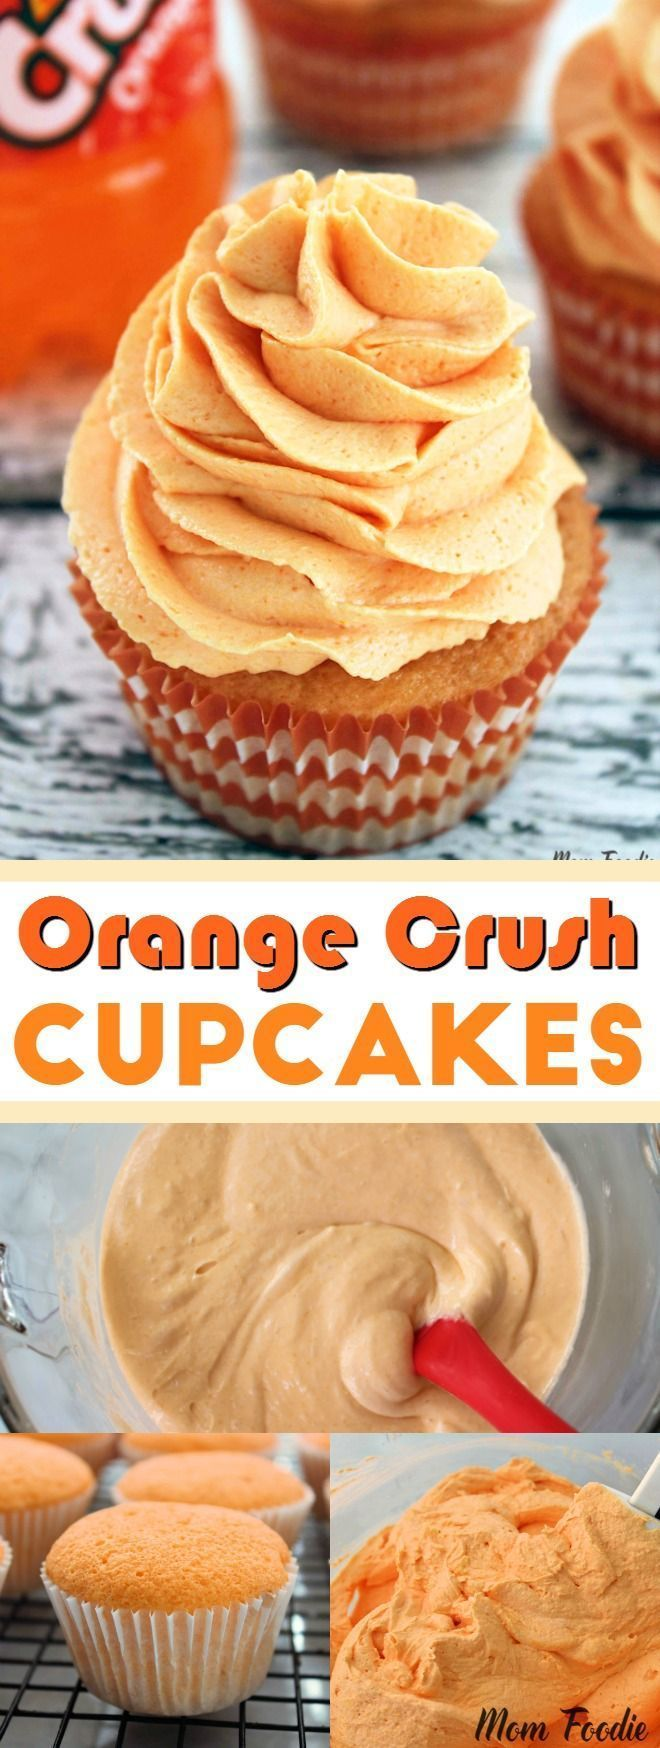 Orange Crush Cupcakes - fun cupcakes made with Orange Crush soda!